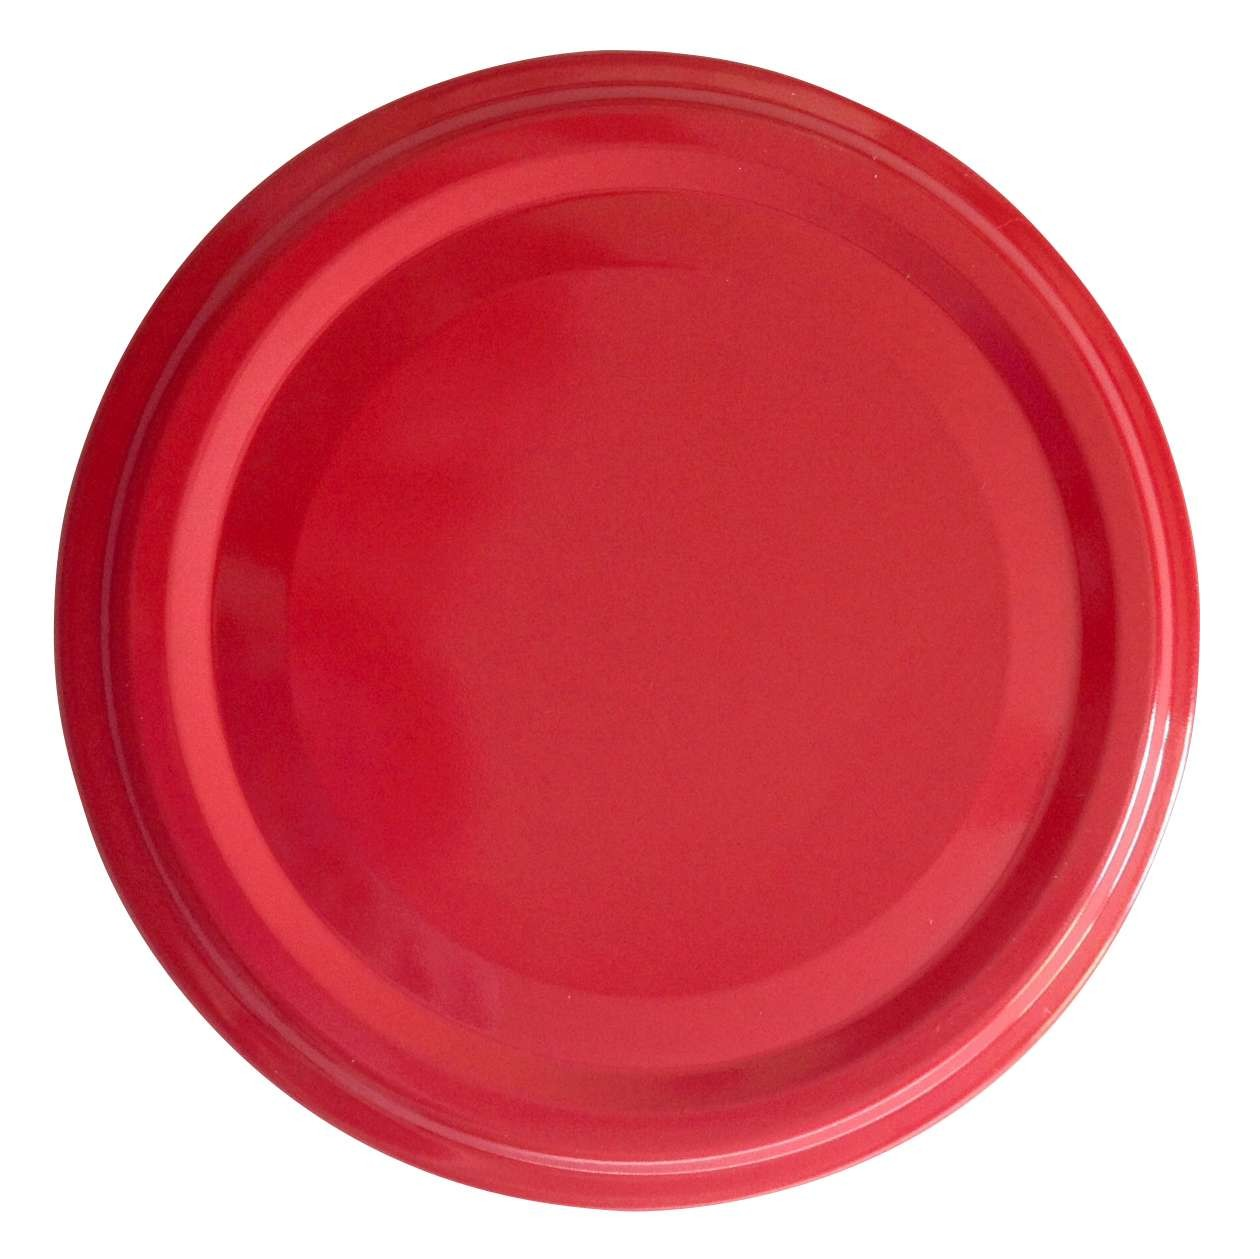 Red lid